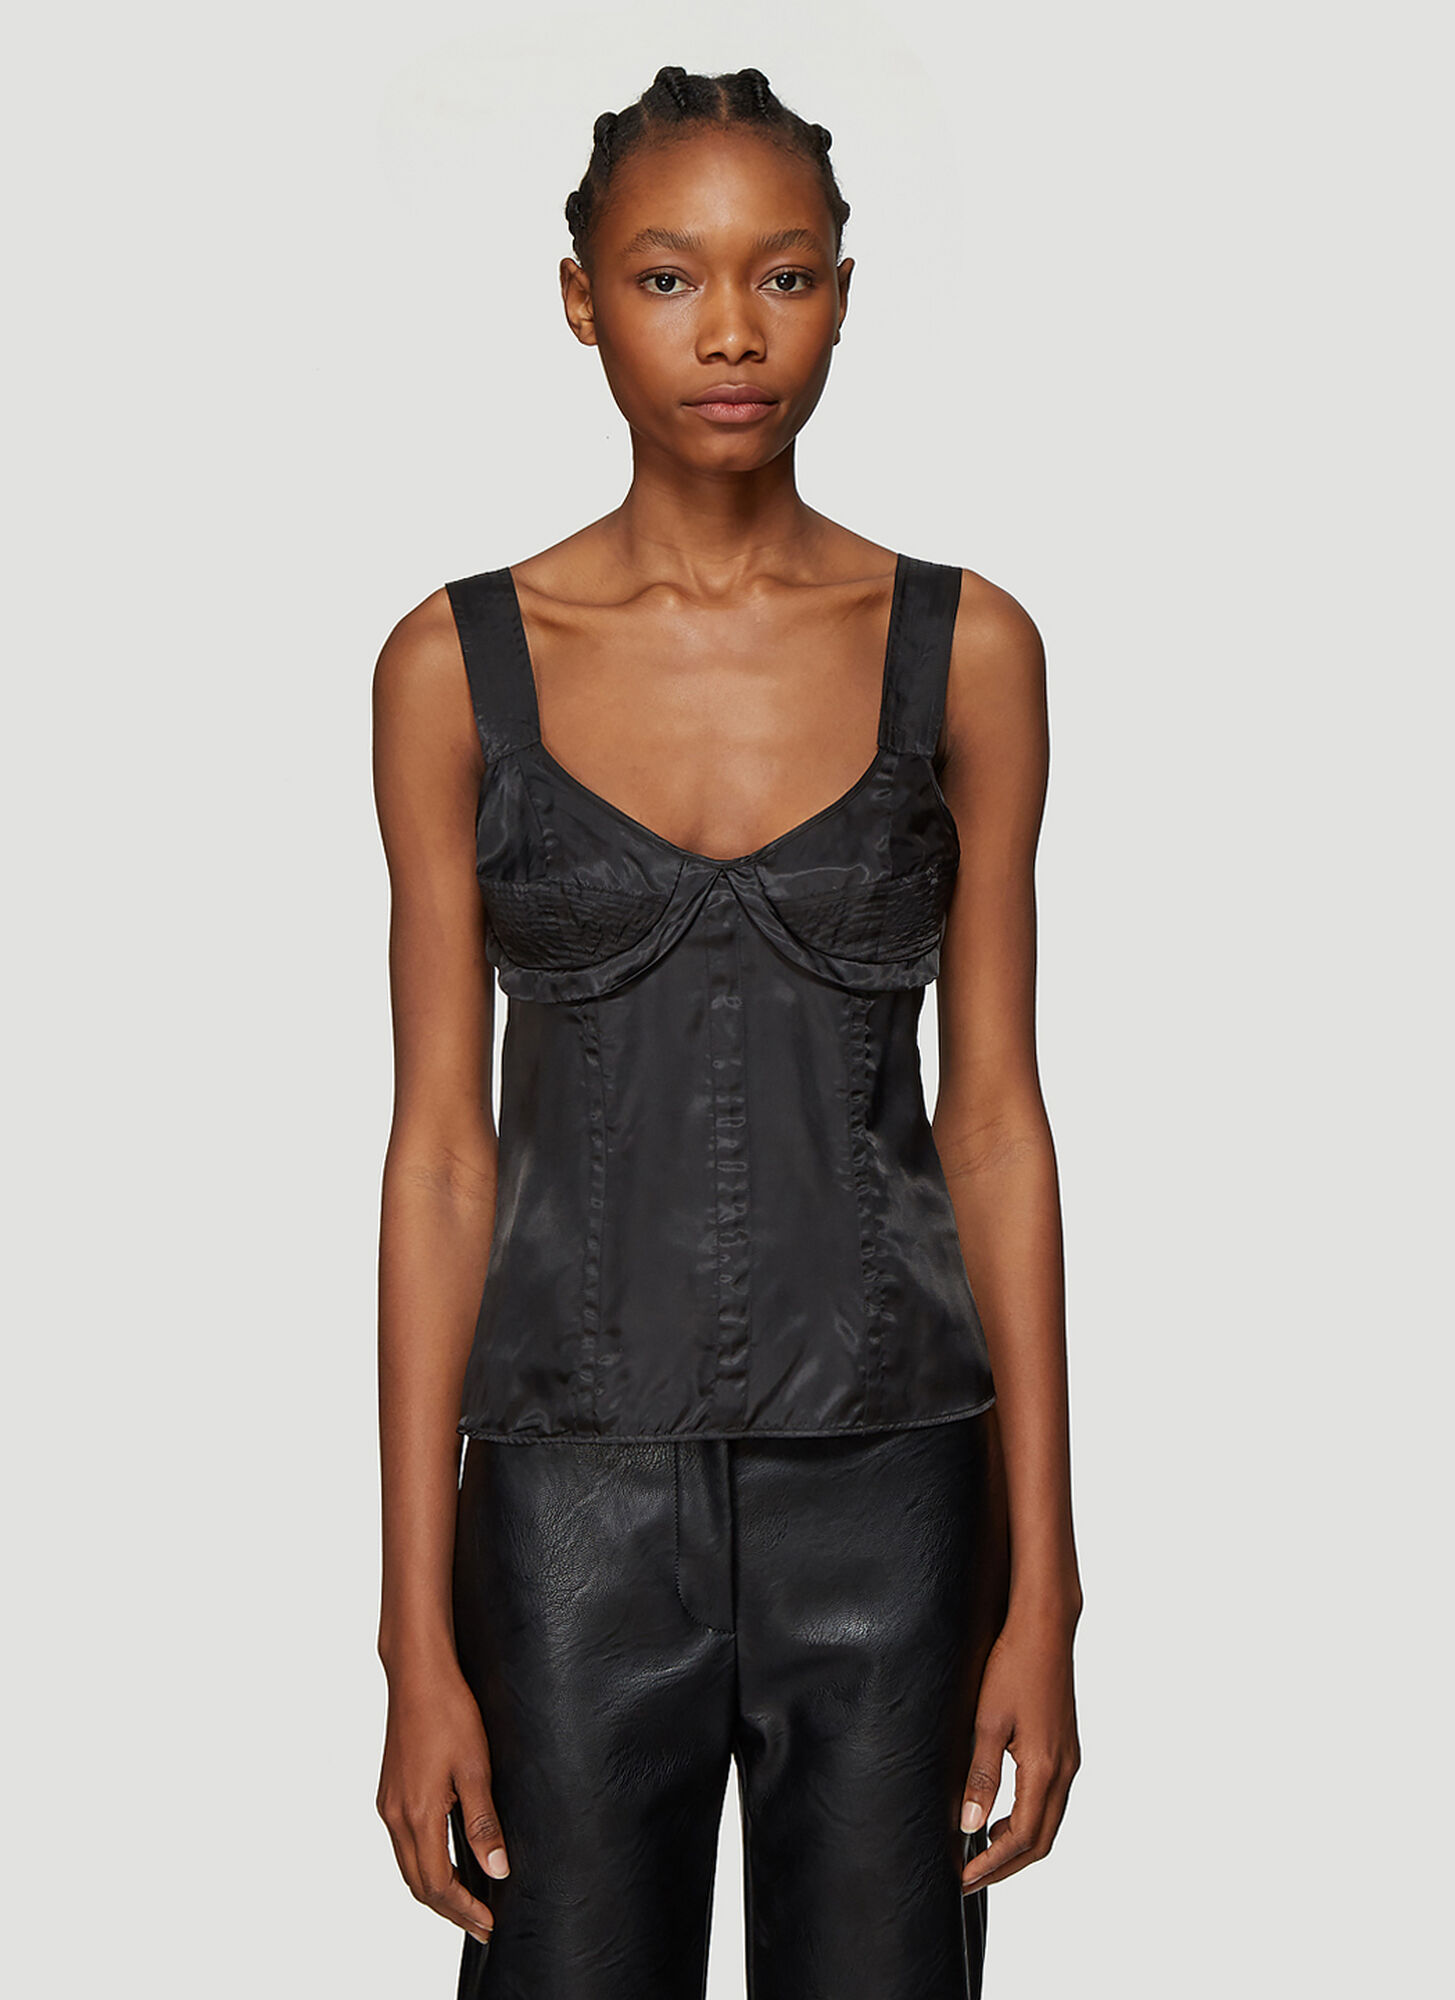 Olivier Theyskens Corset Detail Top in Black